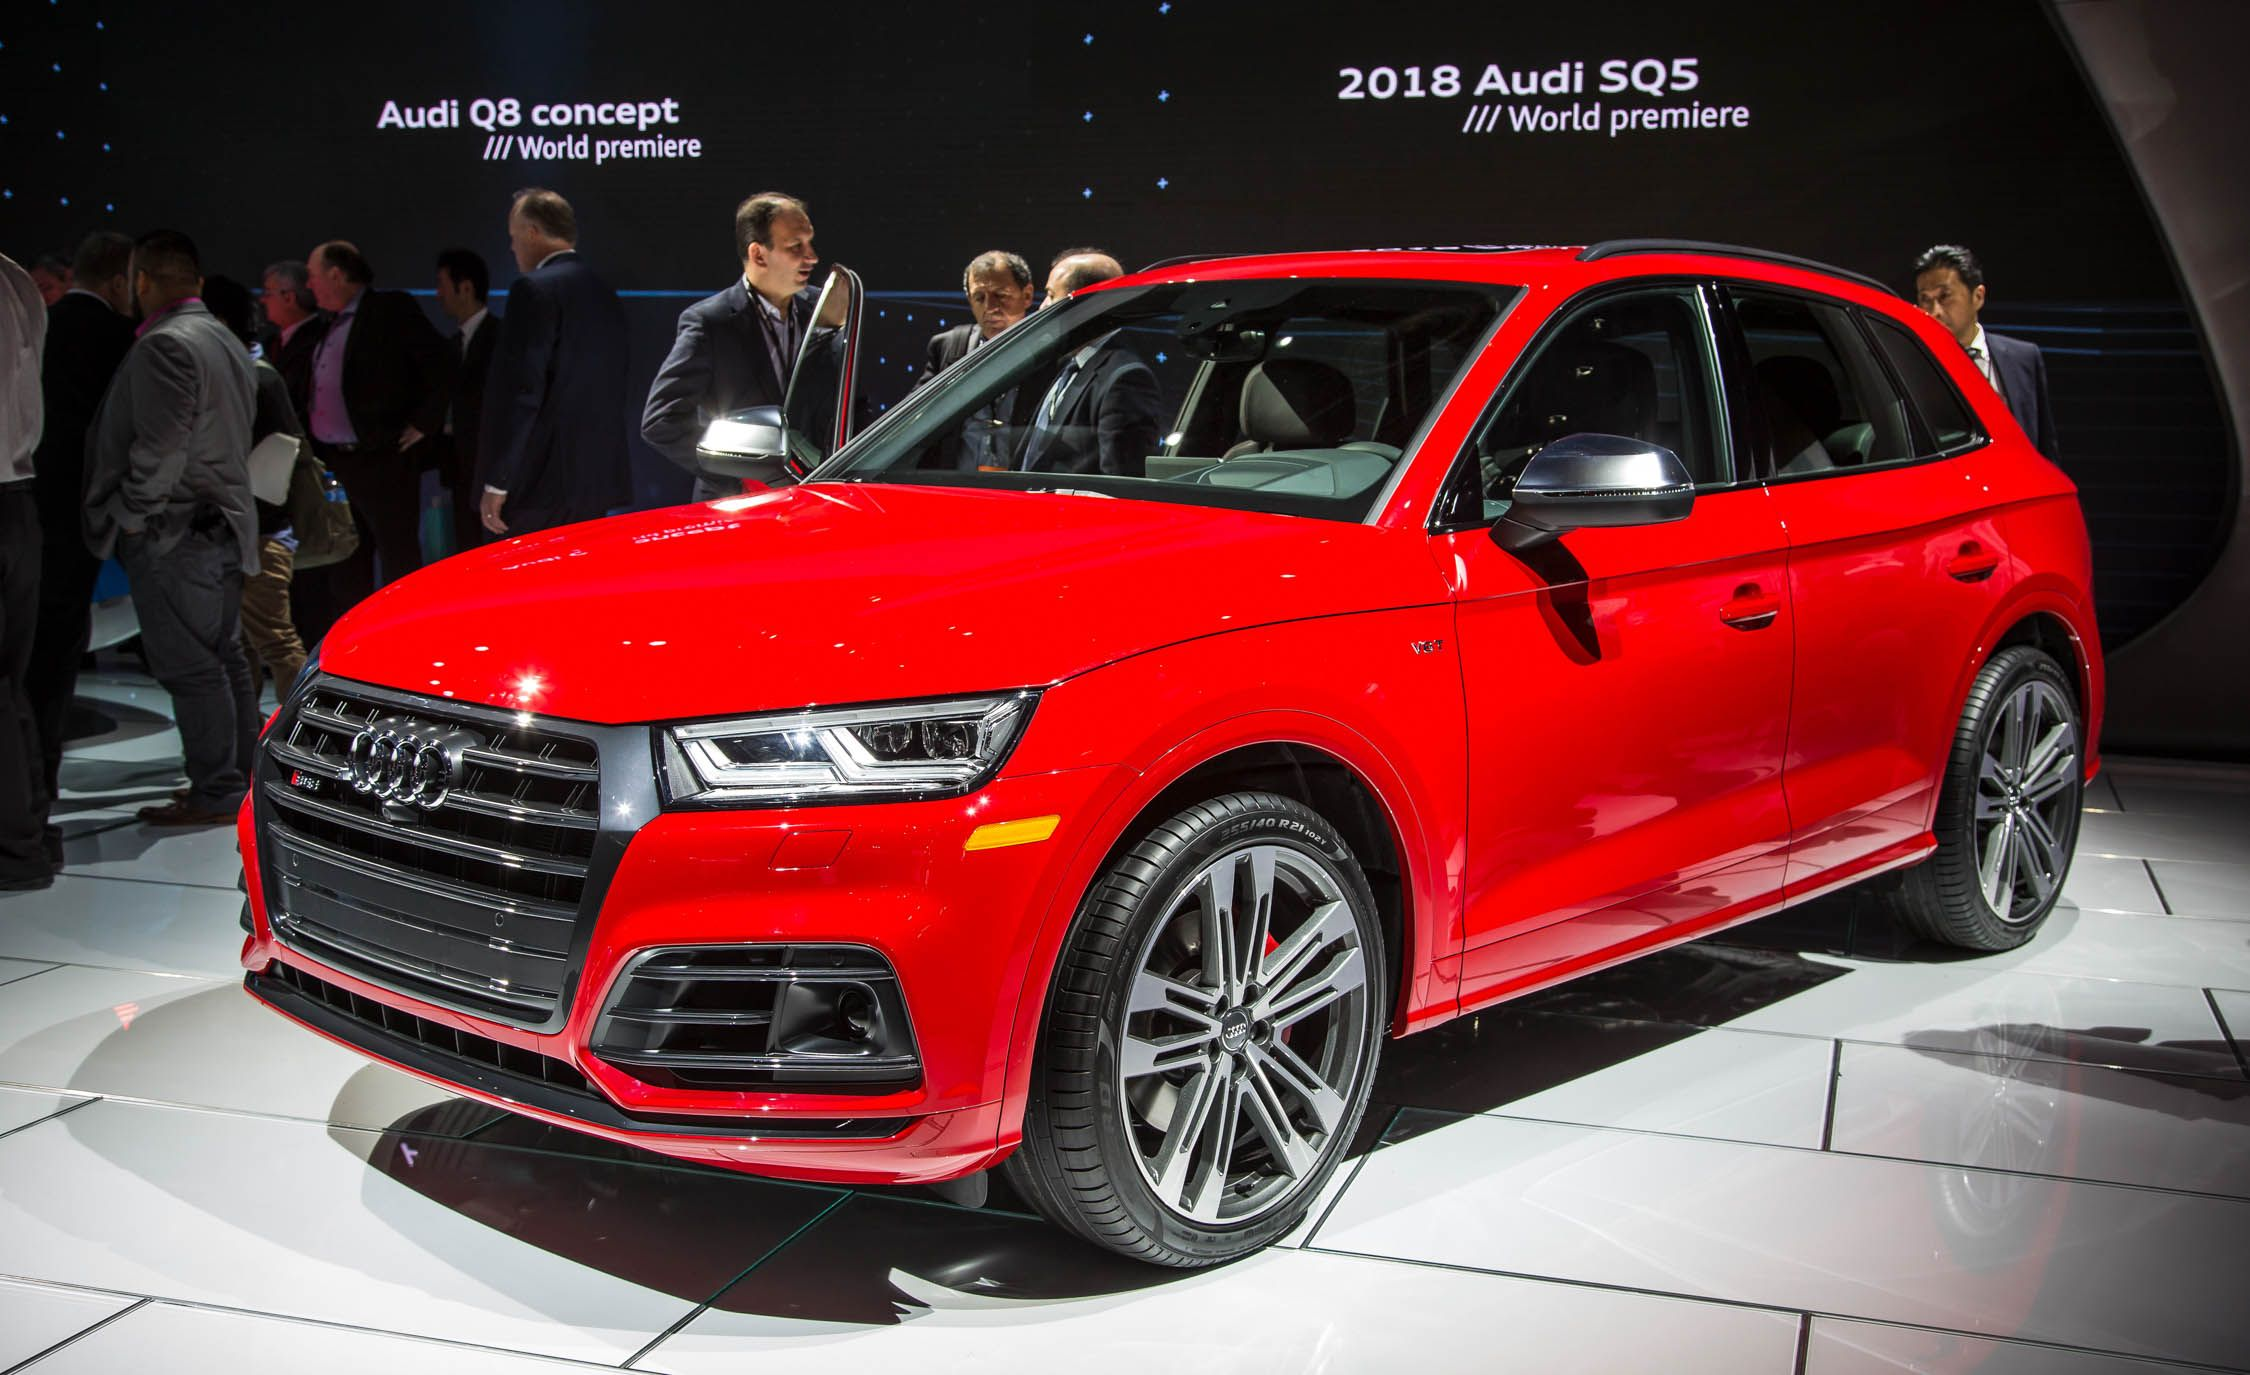 2018 Audi Sq5 3 0 Tfsi More Torque Without The Supercharger